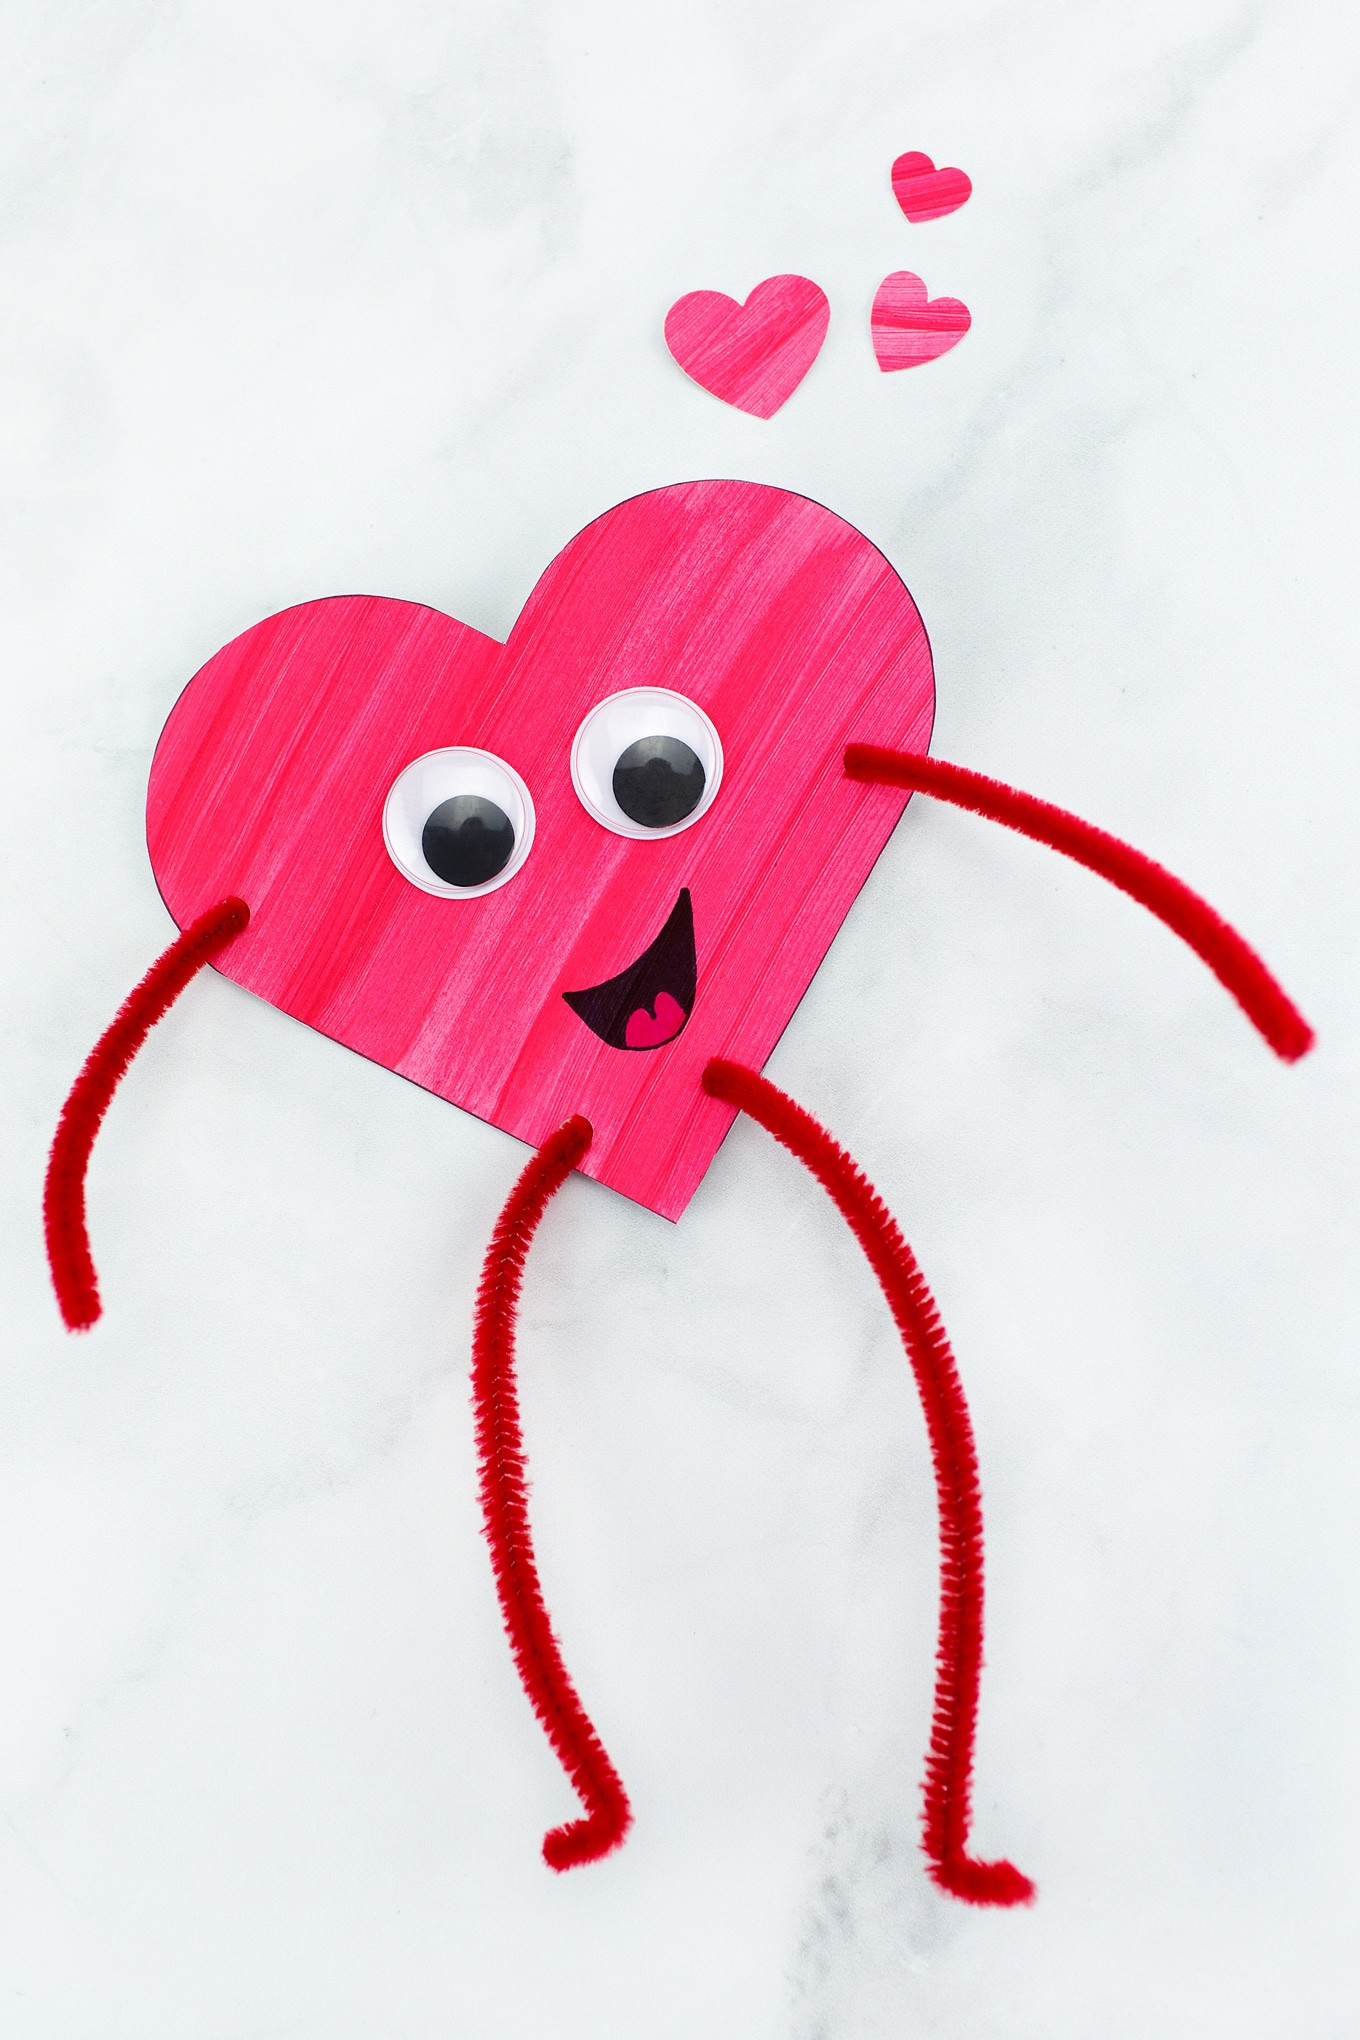 Best ideas about Valentines Day Craft Ideas For Kids . Save or Pin Heart Bud s Easy Valentine s Day Craft for Kids Now.